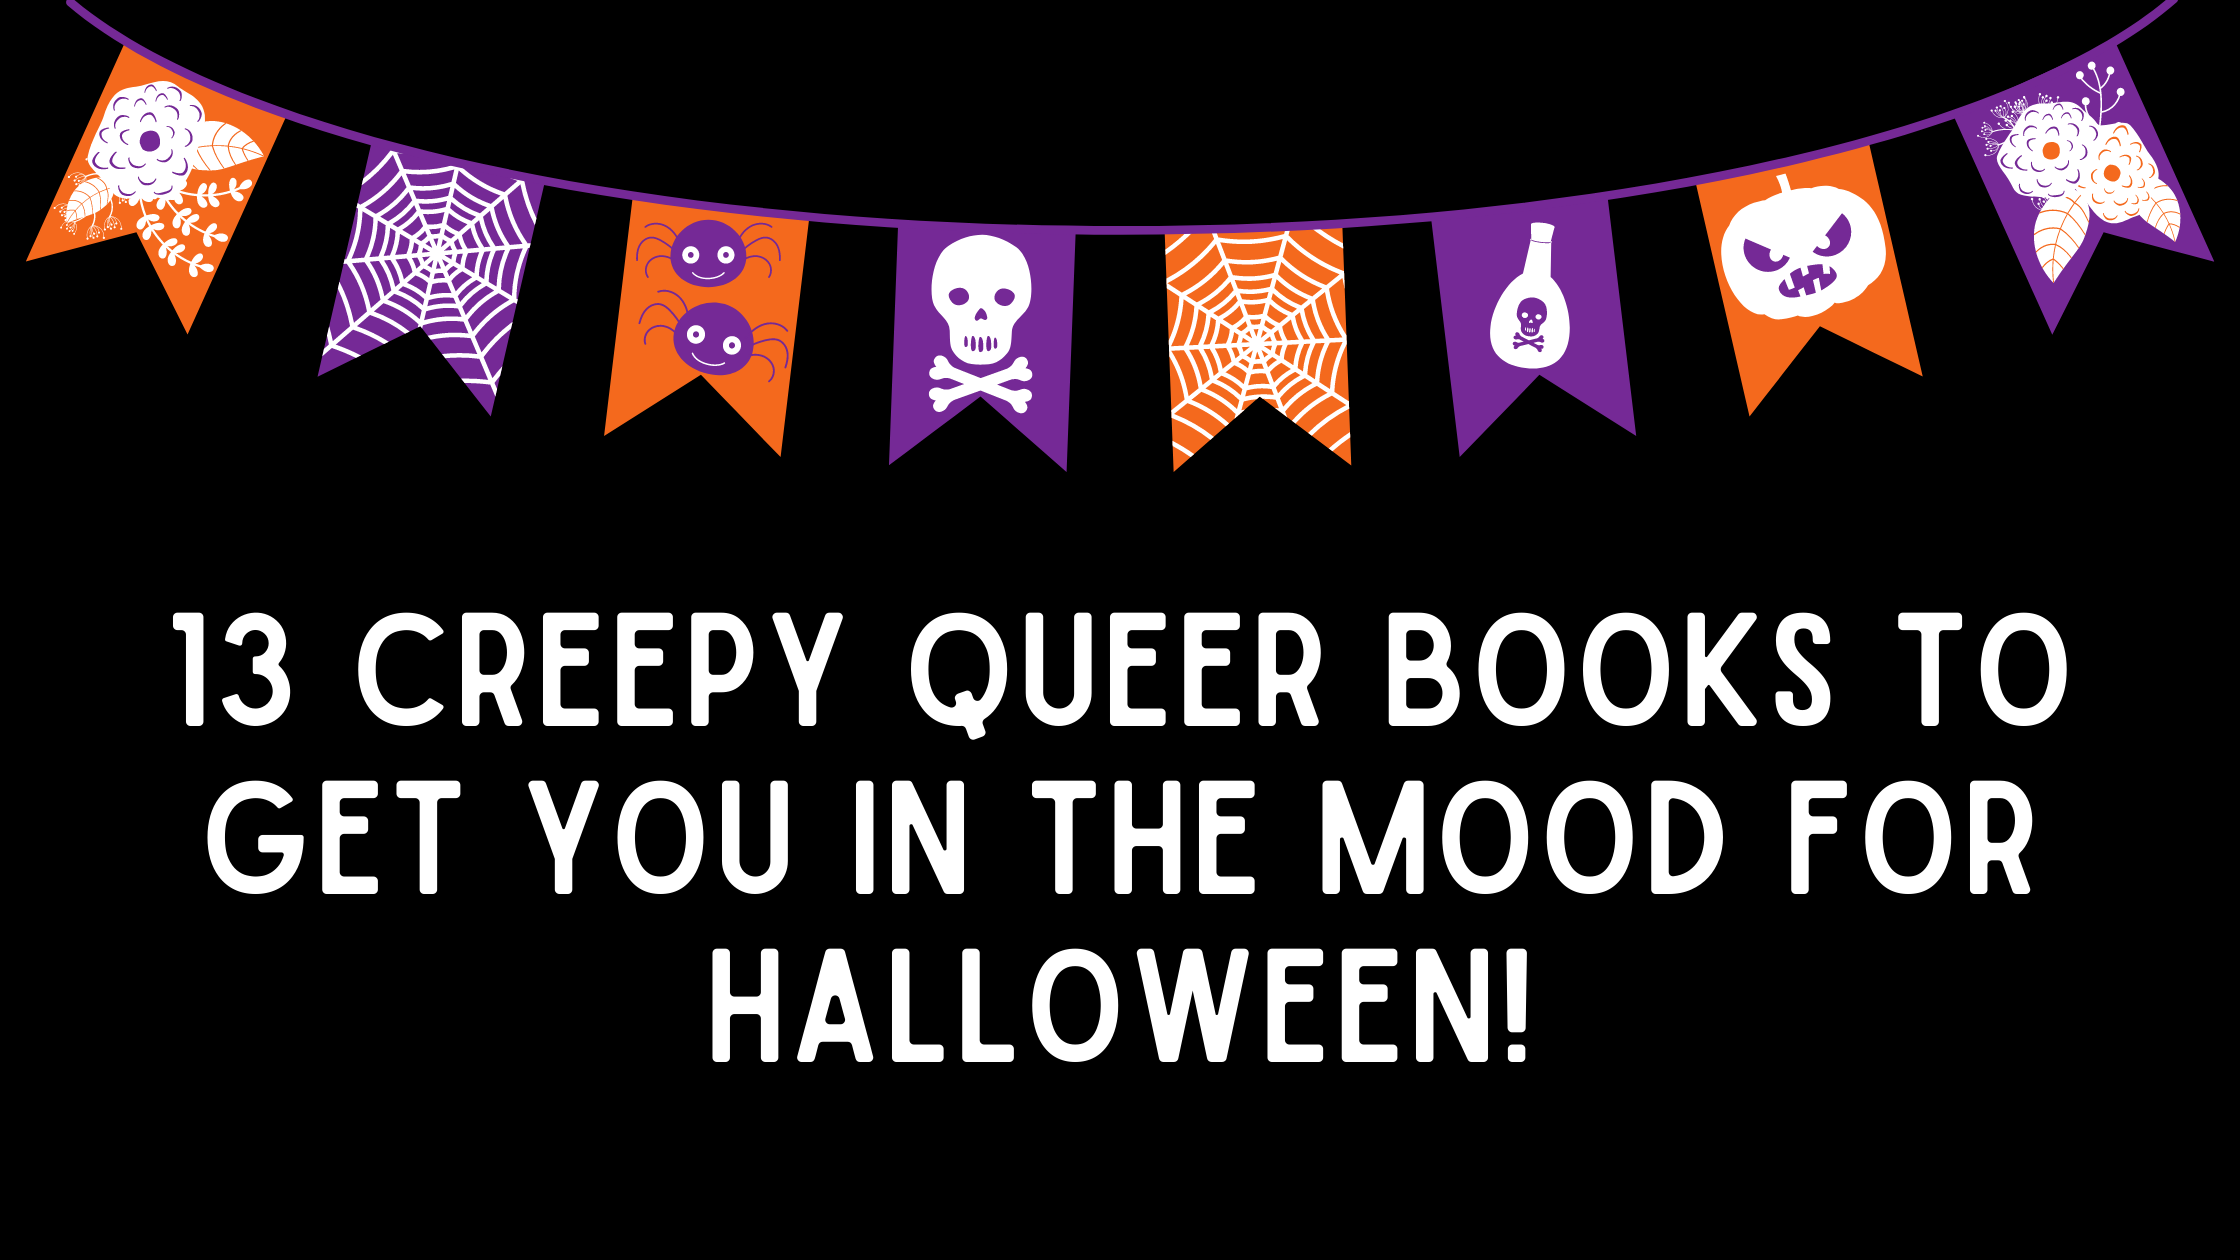 13 creepy queer books to get you in the mood for Halloween!